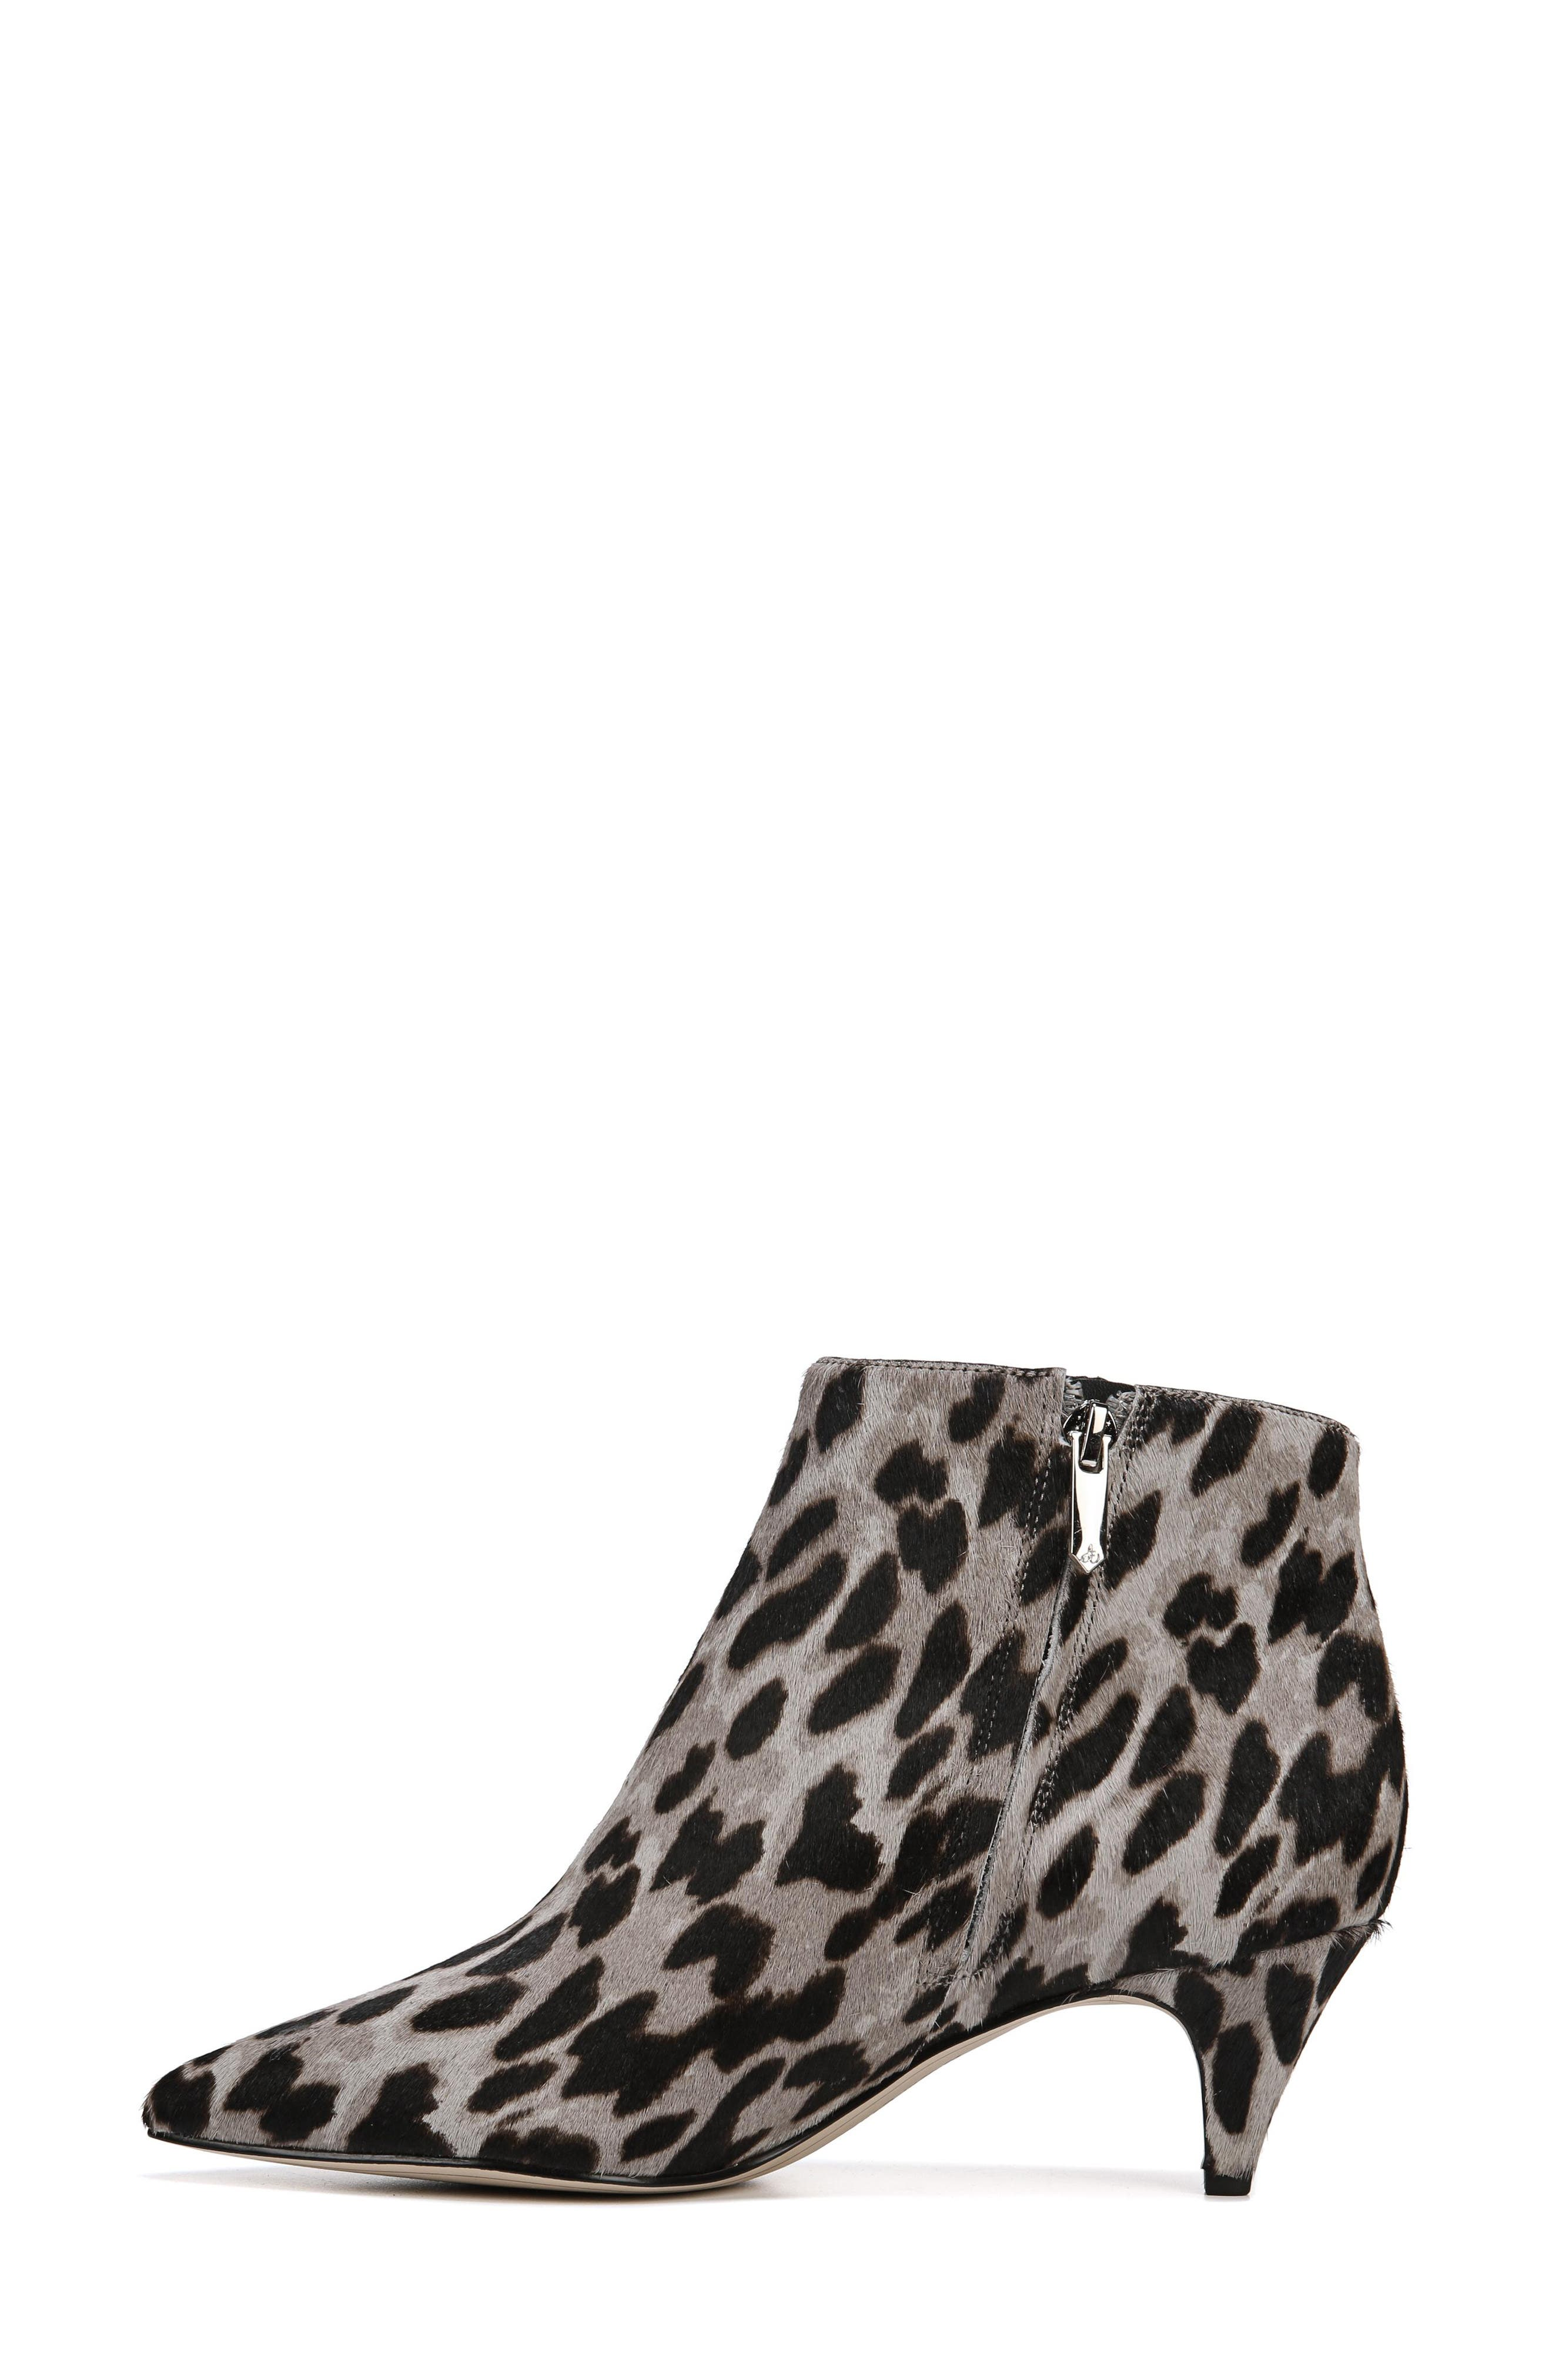 Kinzey Genuine Calf Hair Pointy Toe Bootie,                             Alternate thumbnail 9, color,                             GREY LEOPARD BRAHMA HAIR